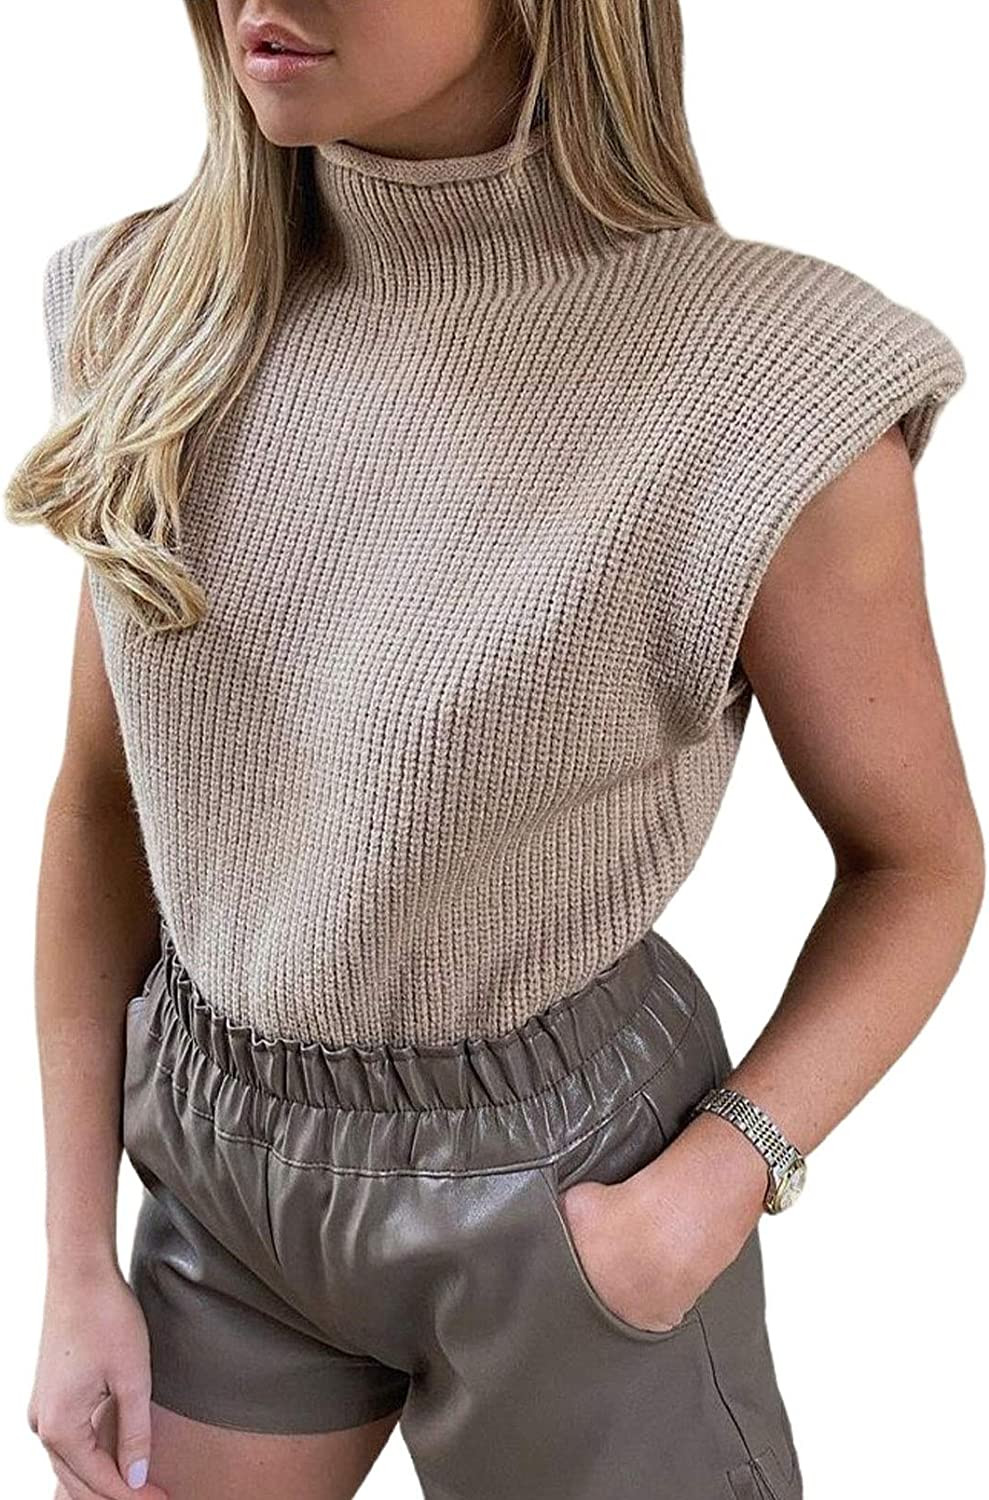 Linsery Women's Turtle Neck Sleeveless Knit Sweater Vest Shoulder Pad Pullover